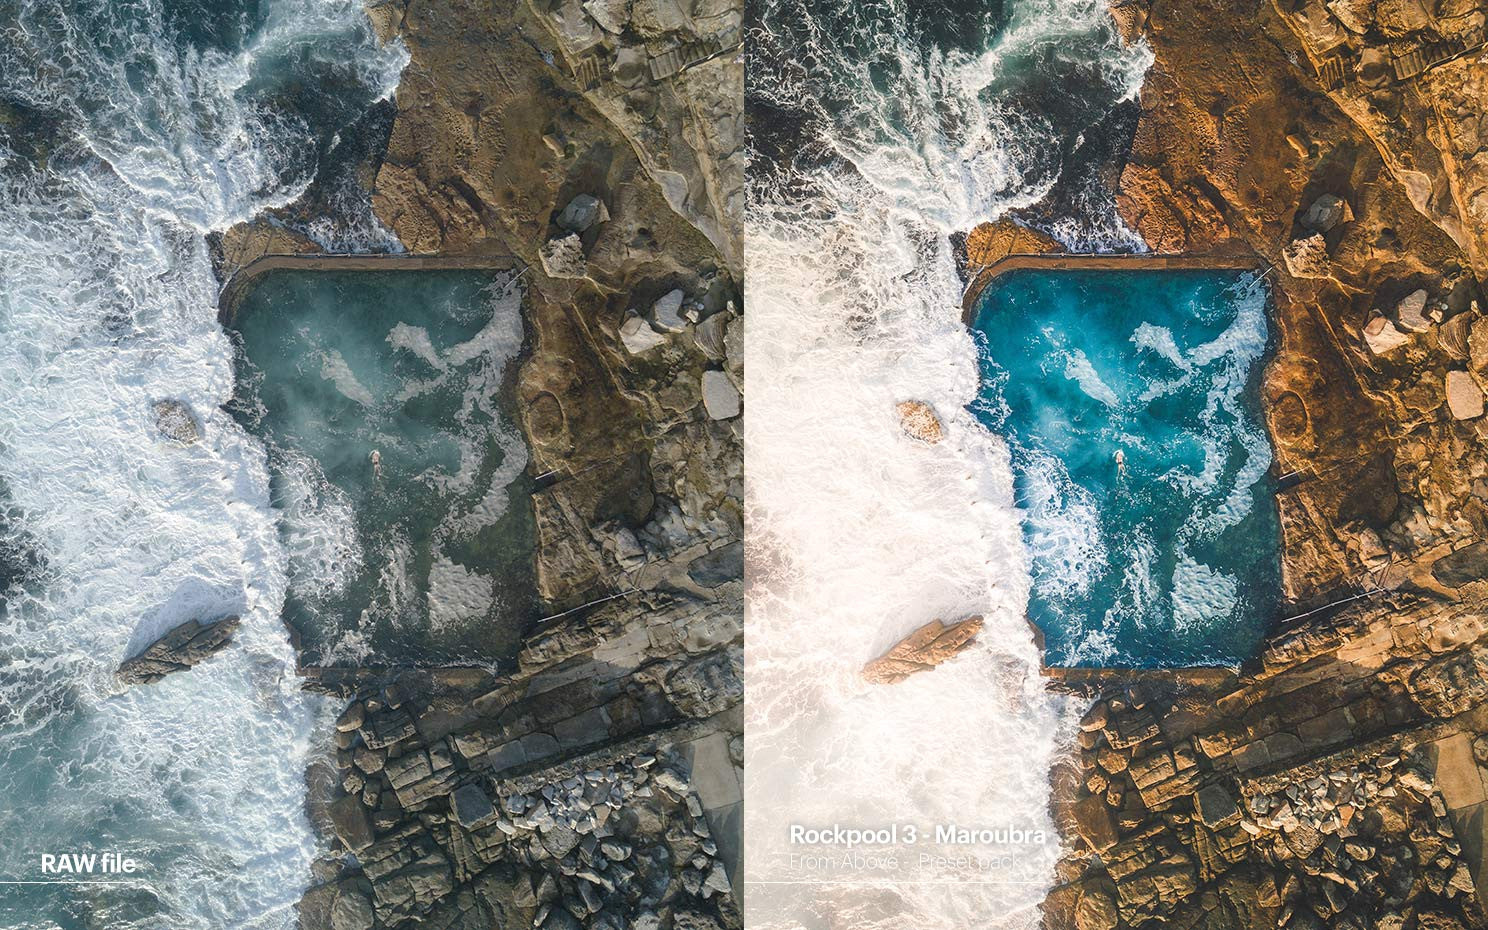 Pat Kay presets - From Above - Rockpool 3 - Maroubra